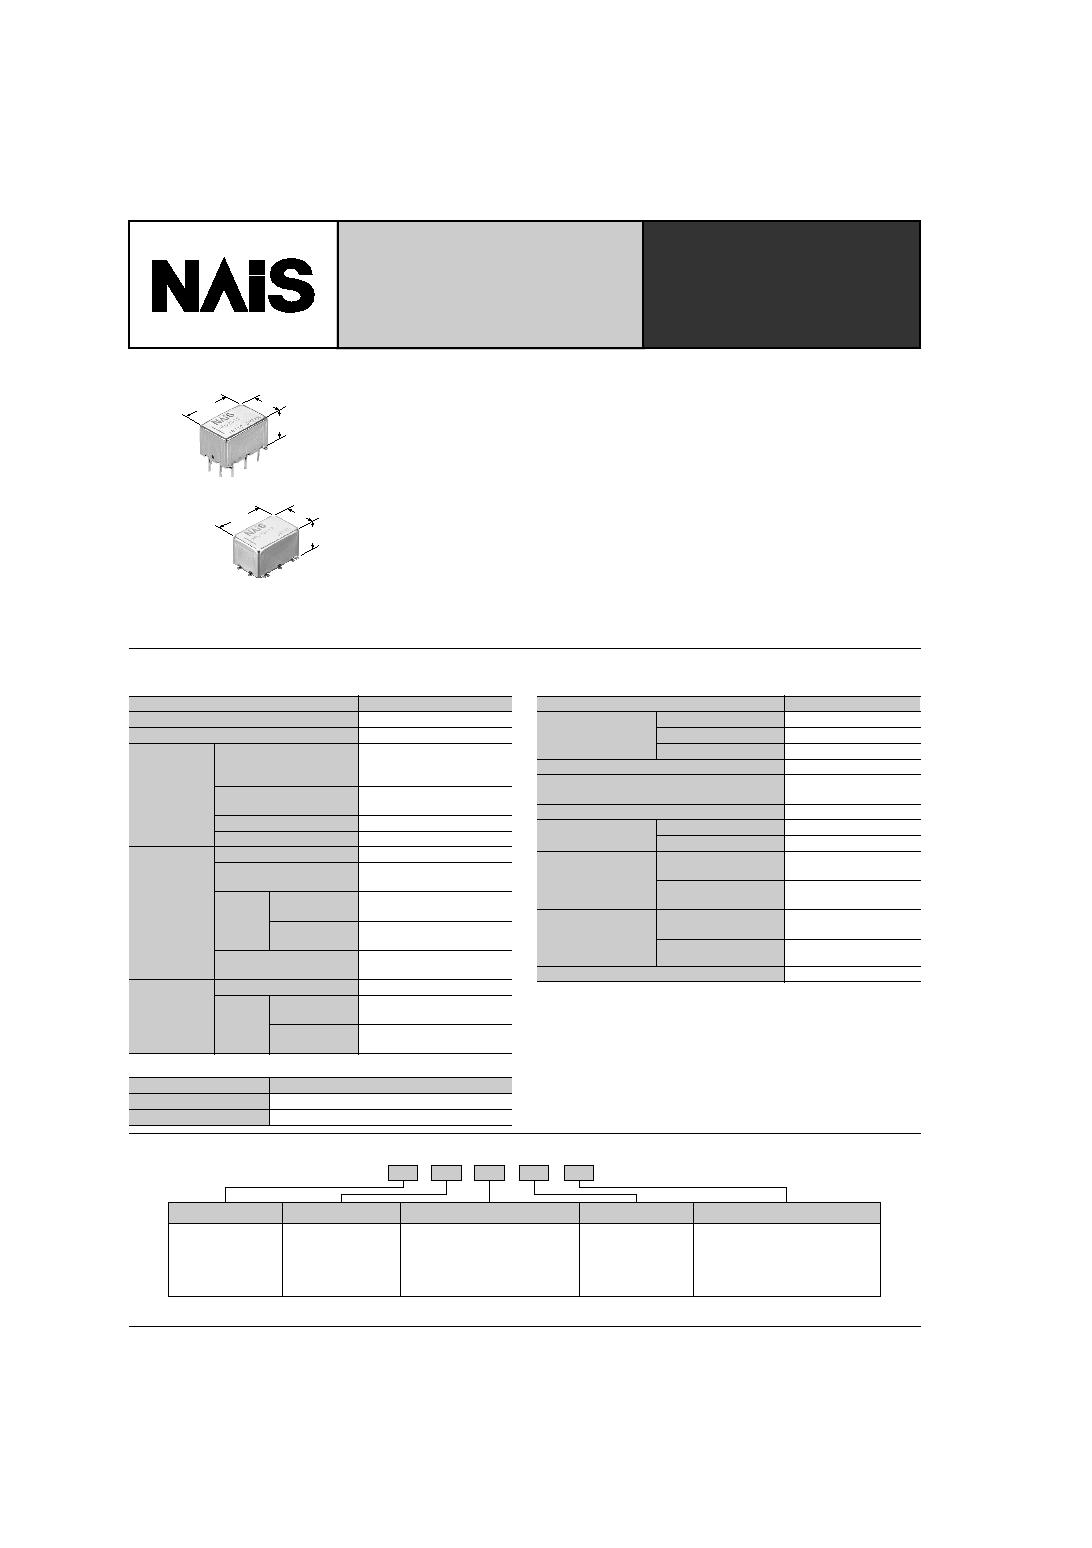 Arj20a4h Nais Smd Relays With 8ghz Capabilities Htmldatasheet 12 Volt Relay Document Outline